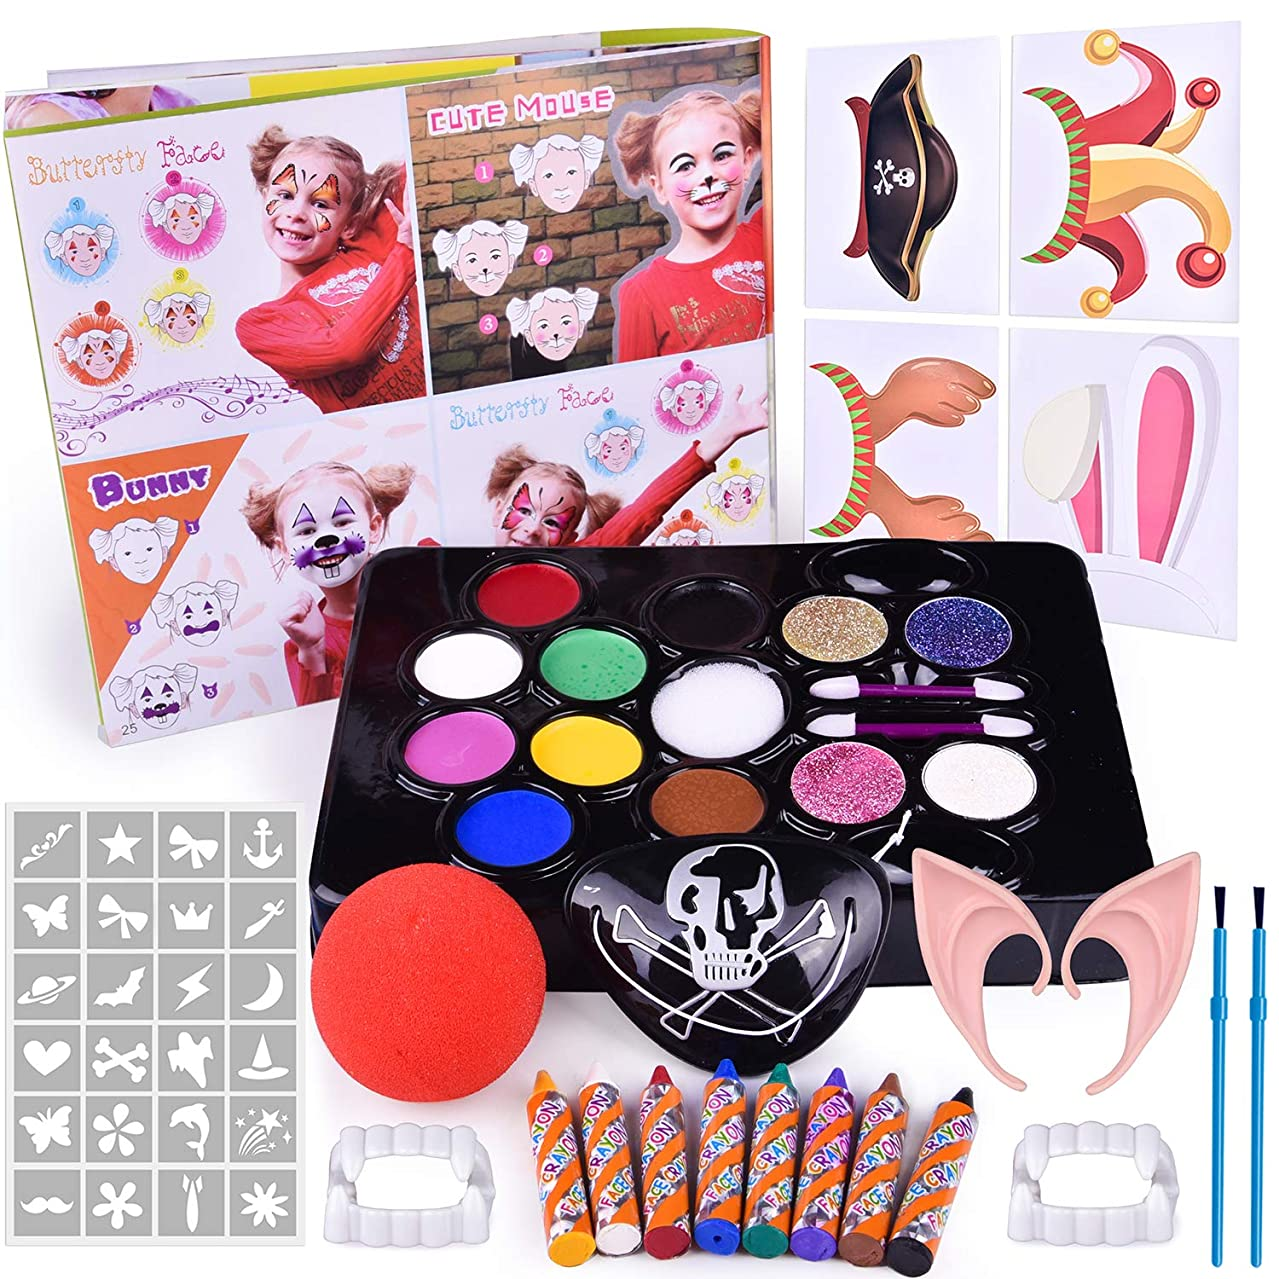 60 PCs Face Painting Kits for Kids, Kids Make Up Kit with Water Based Paints, Glitters, Stencils, Crayons, Make Up Tools, Pretend Play Accessories, Instruction Book, Safe & Non-Toxic